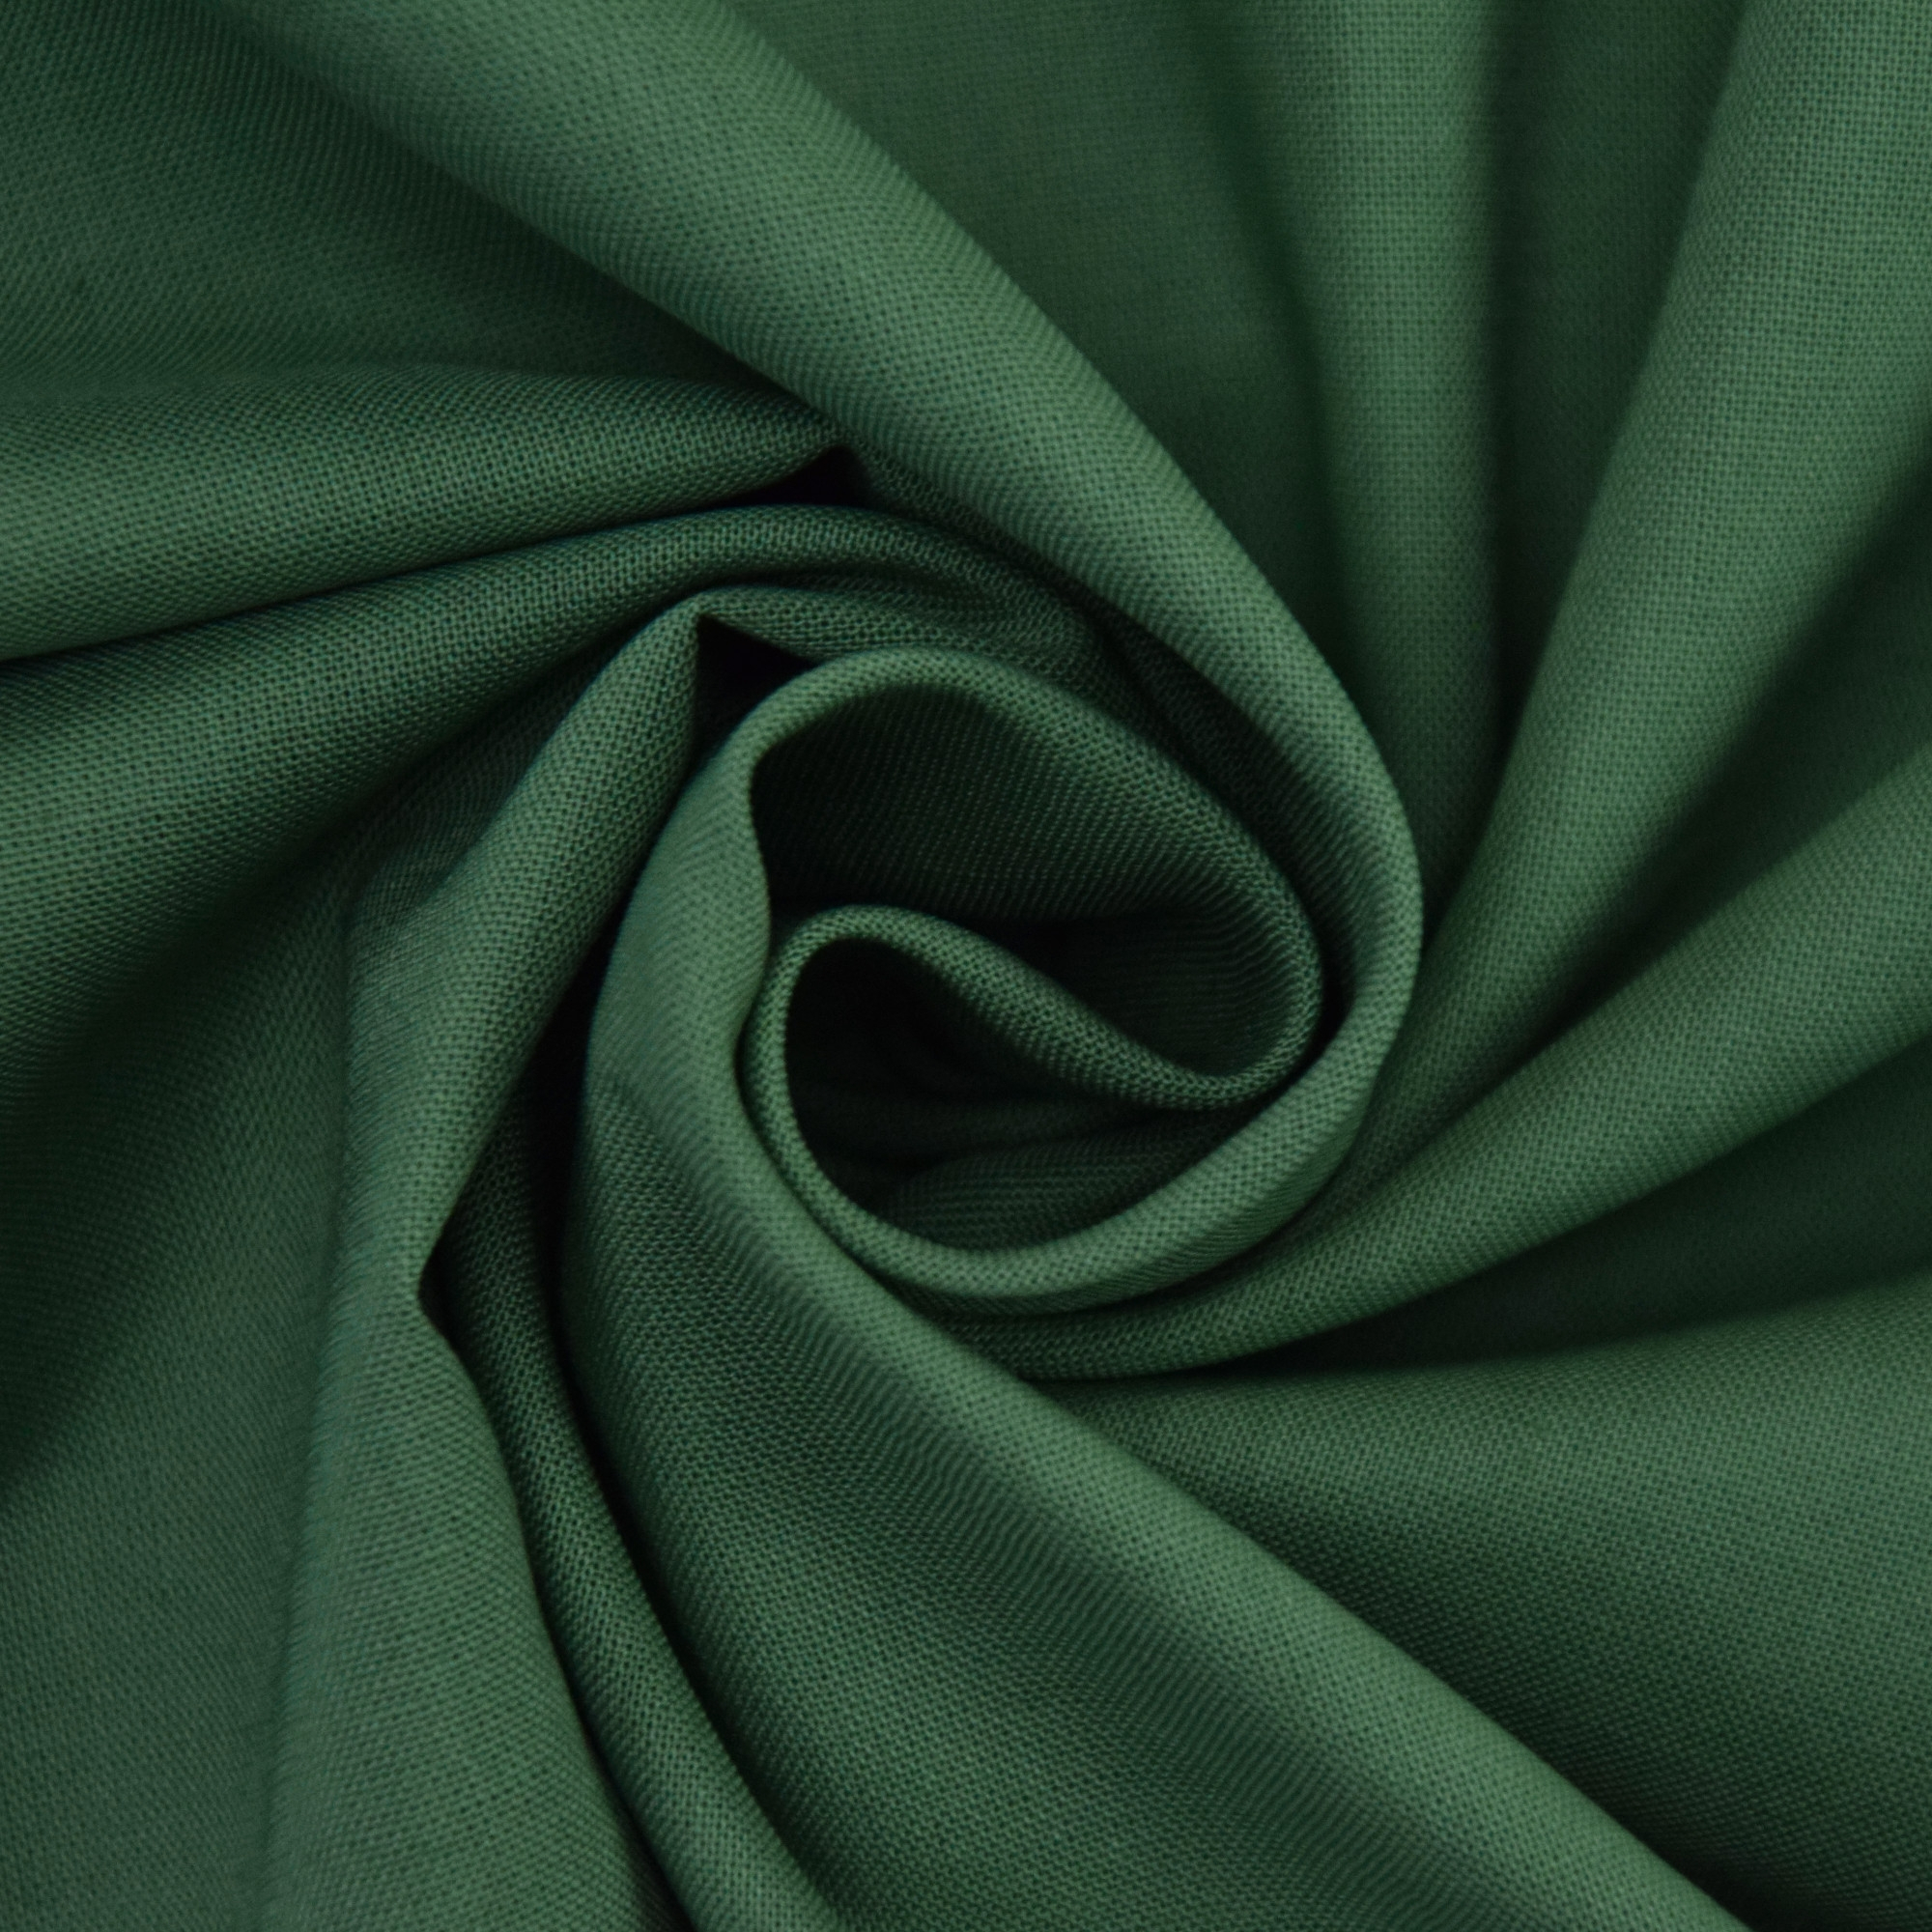 Cotton Cretonne olive-green | 100.018-7037 | grün